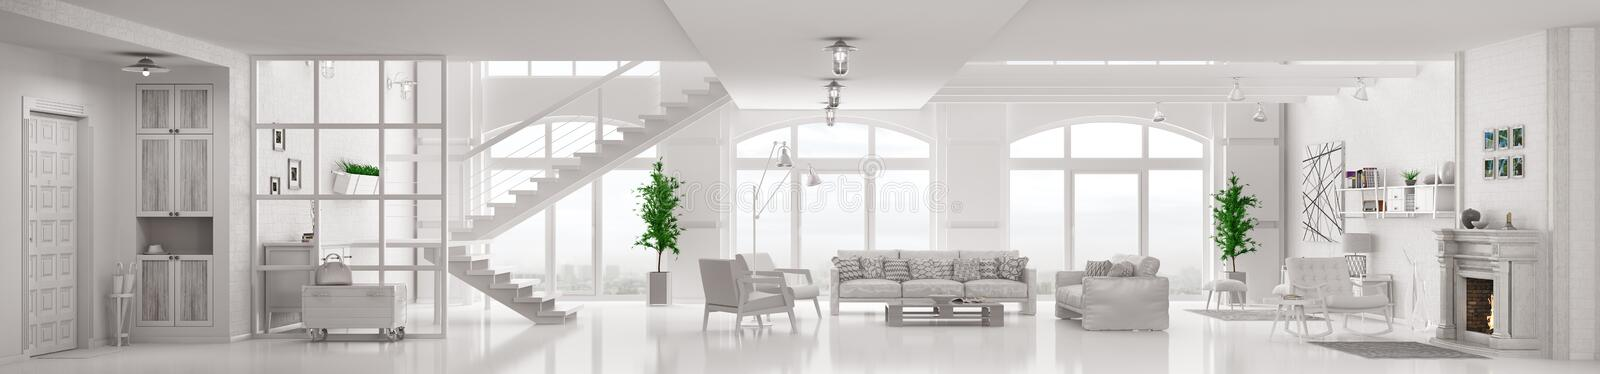 White loft apartment interior 3d rendering stock illustration